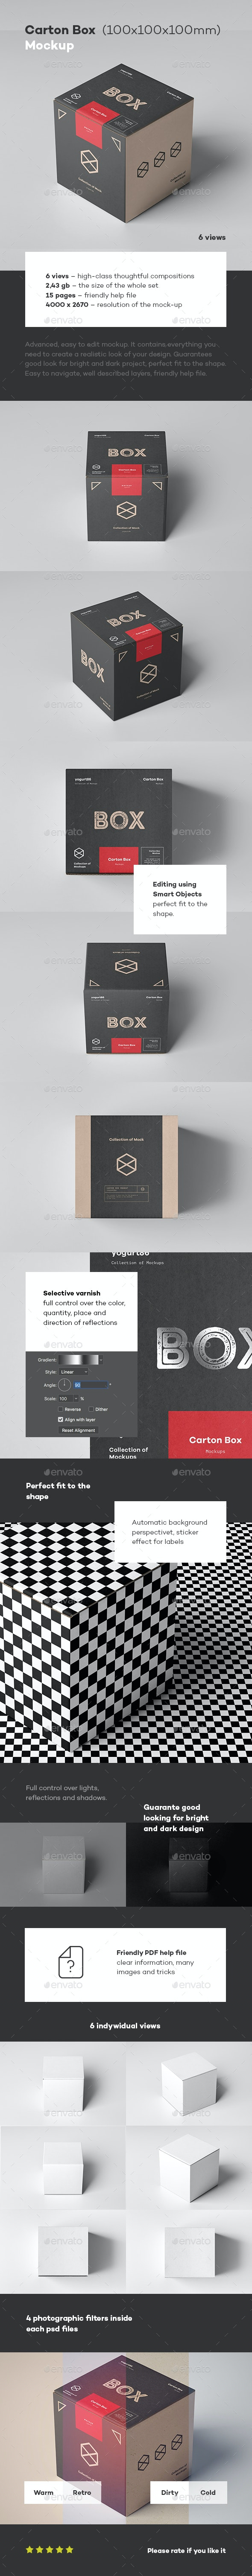 Carton Box Mockup 100x100x100 - Miscellaneous Packaging